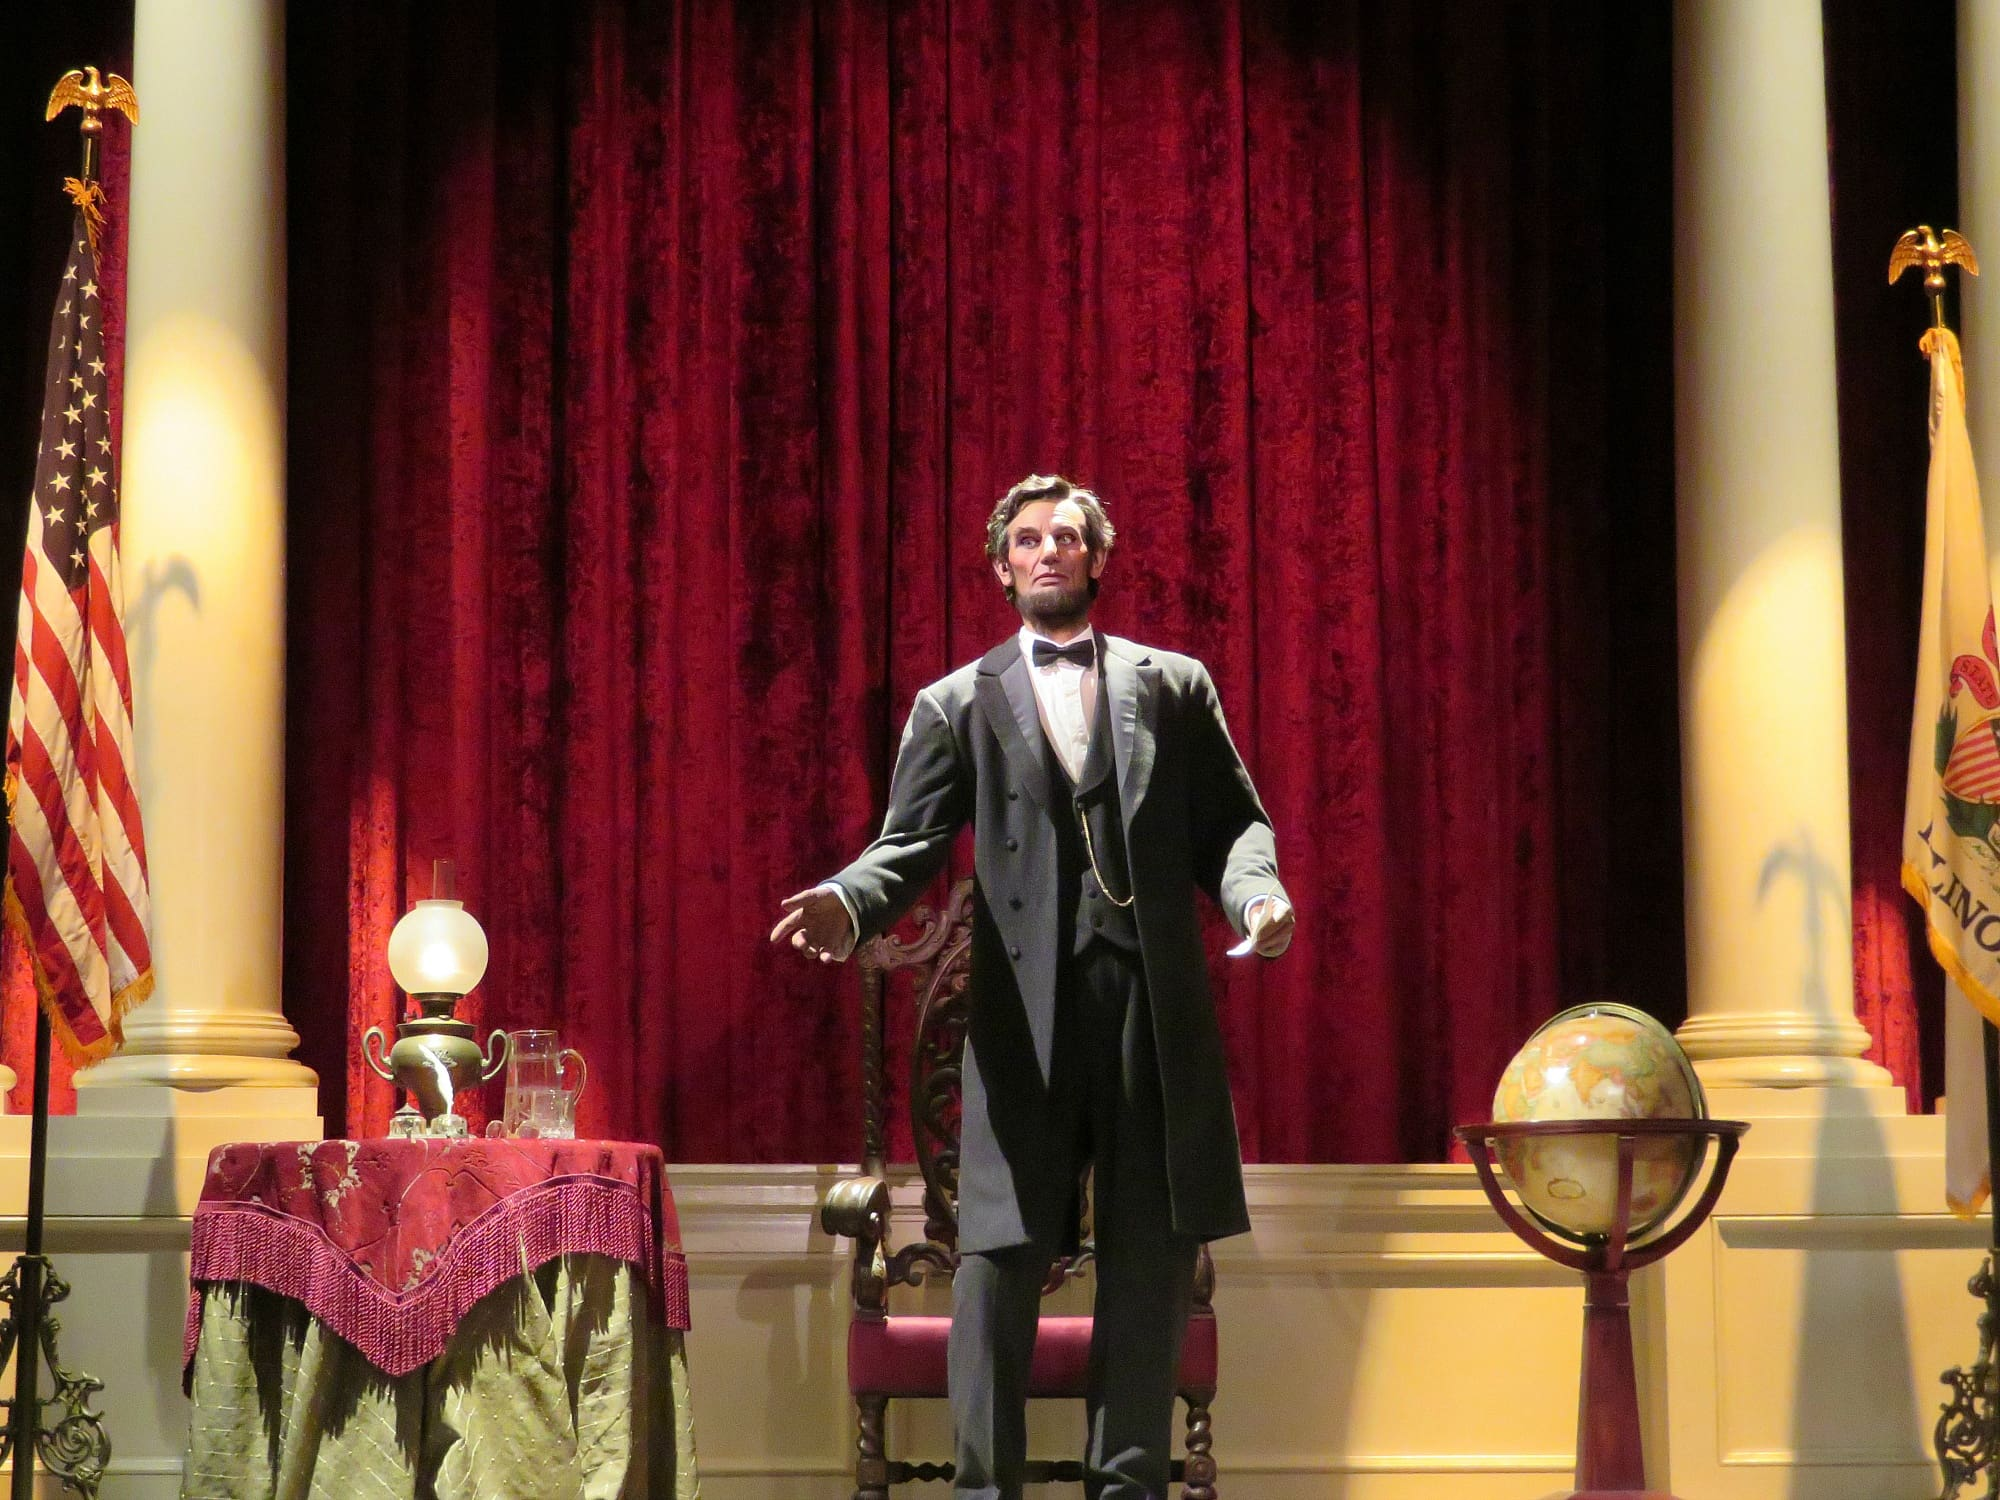 Learn American history at Great Moments with Lincoln ~ Educational Things to Do at Disneyland with Kids